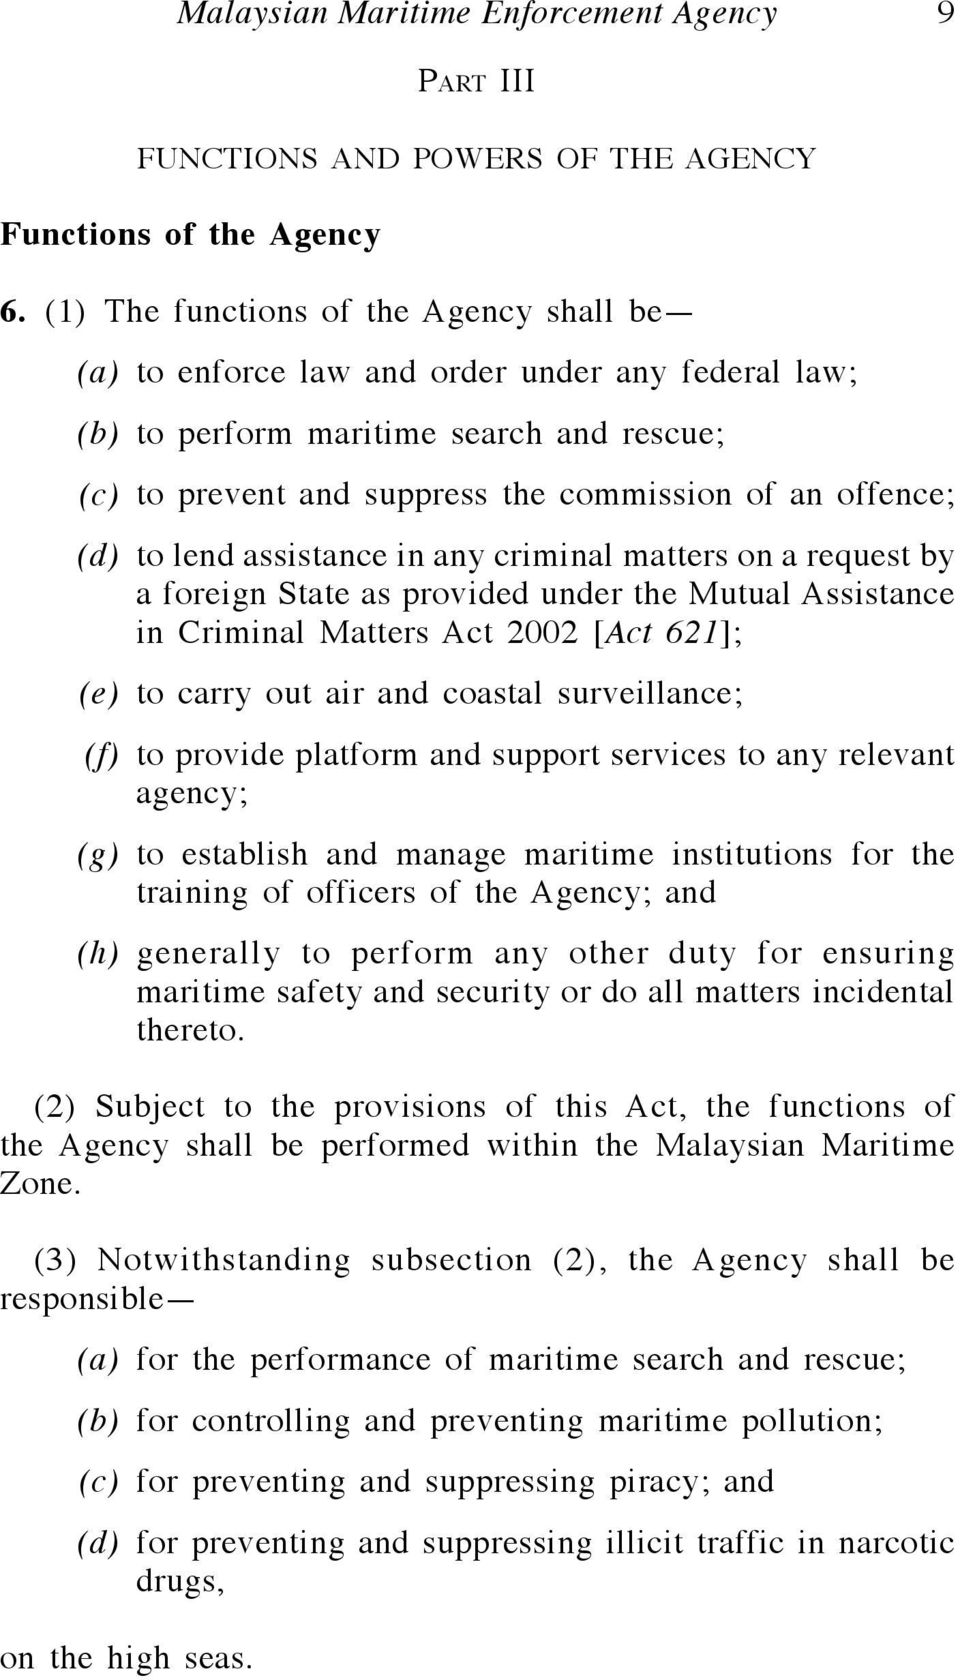 to lend assistance in any criminal matters on a request by a foreign State as provided under the Mutual Assistance in Criminal Matters Act 2002 [Act 621]; (e) to carry out air and coastal